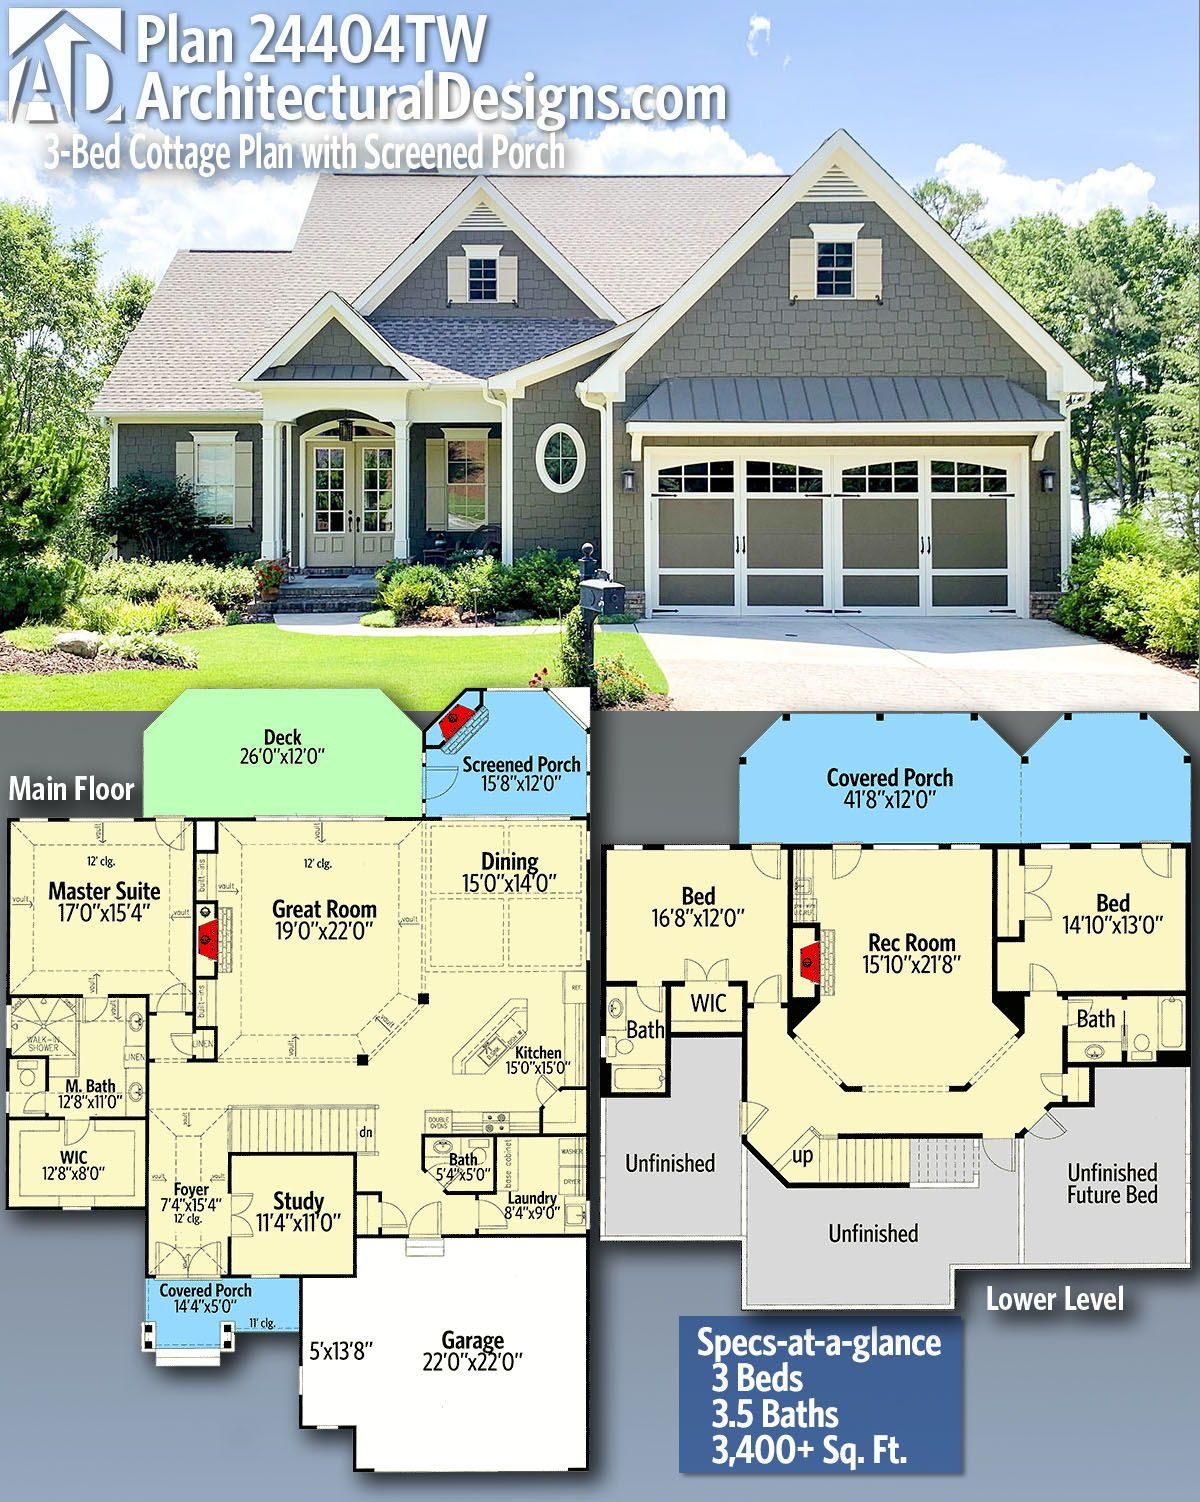 Plan 24404tw 3 Bed Cottage Plan With Screened Porch In 2020 Craftsman House Plan Cottage Plan Craftsman House